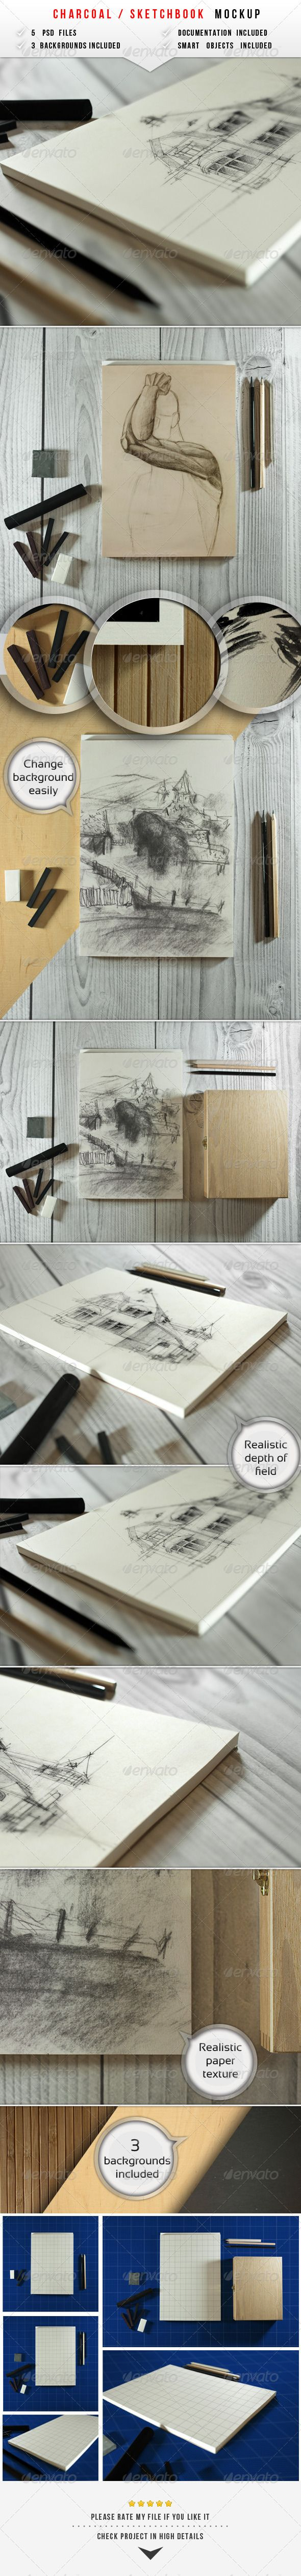 White wood table texture - Sketch Charcoal Mockup Wood Wall Texturewhite